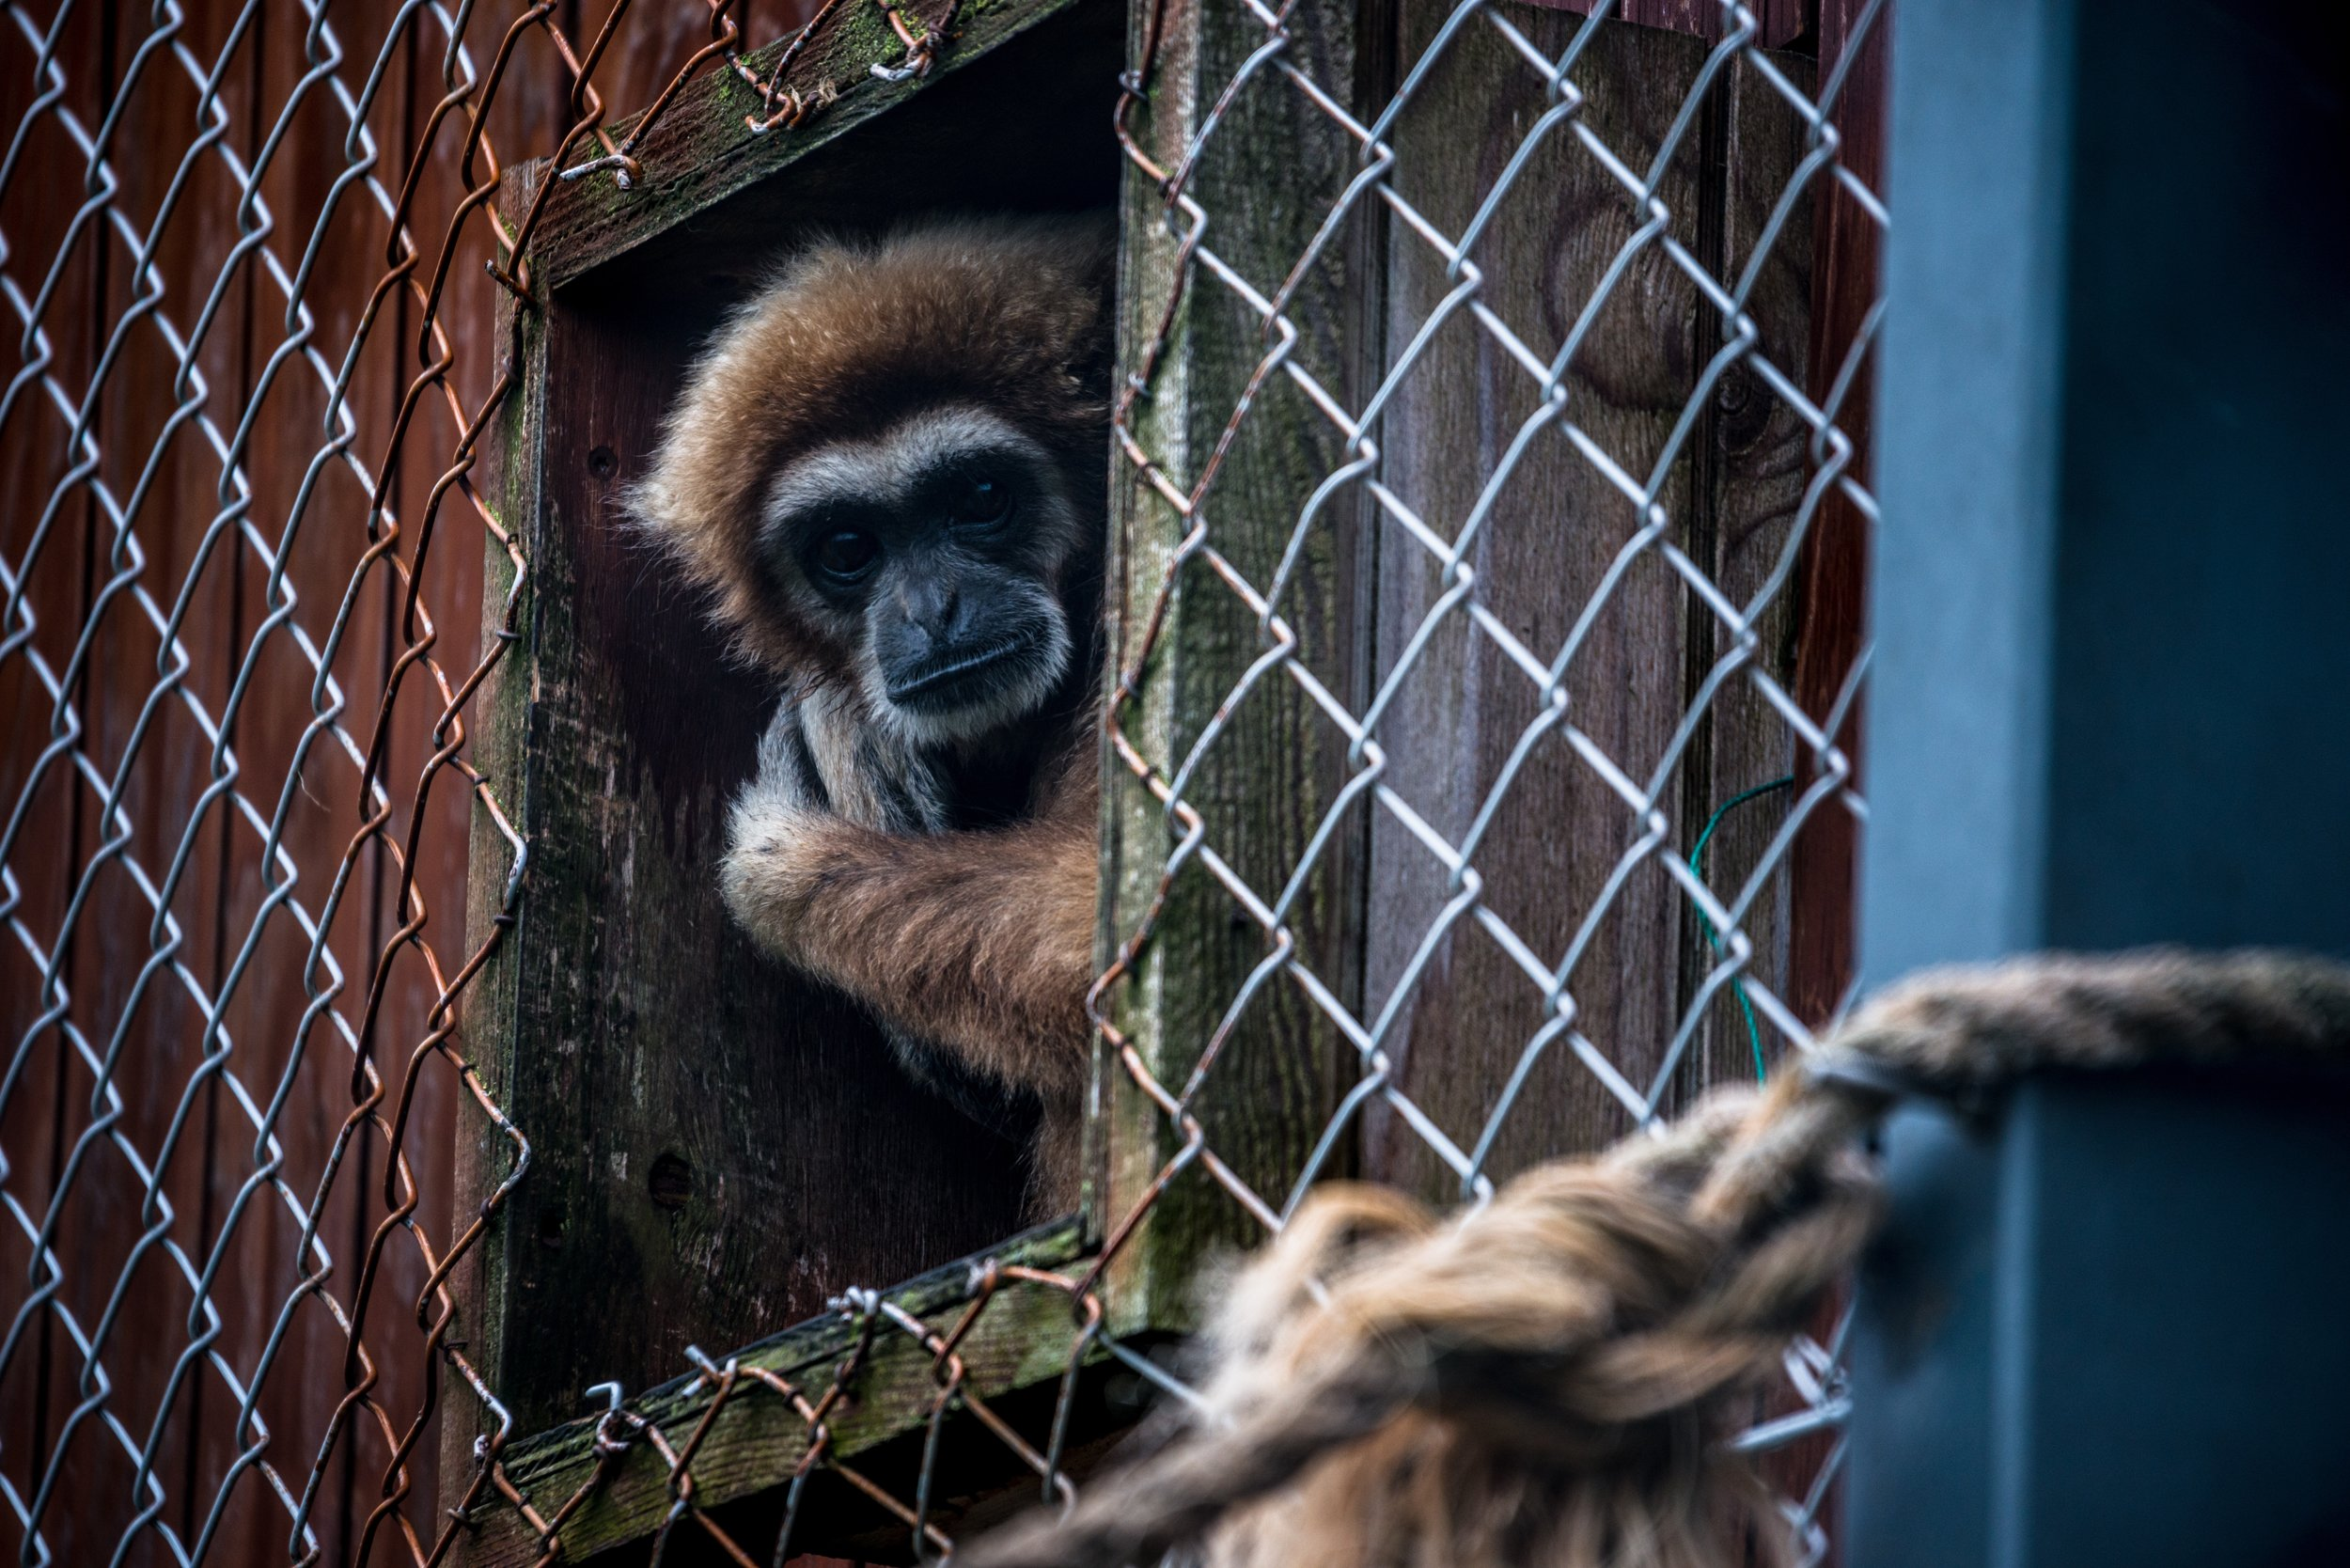 Gibbon in Zoo .jpg